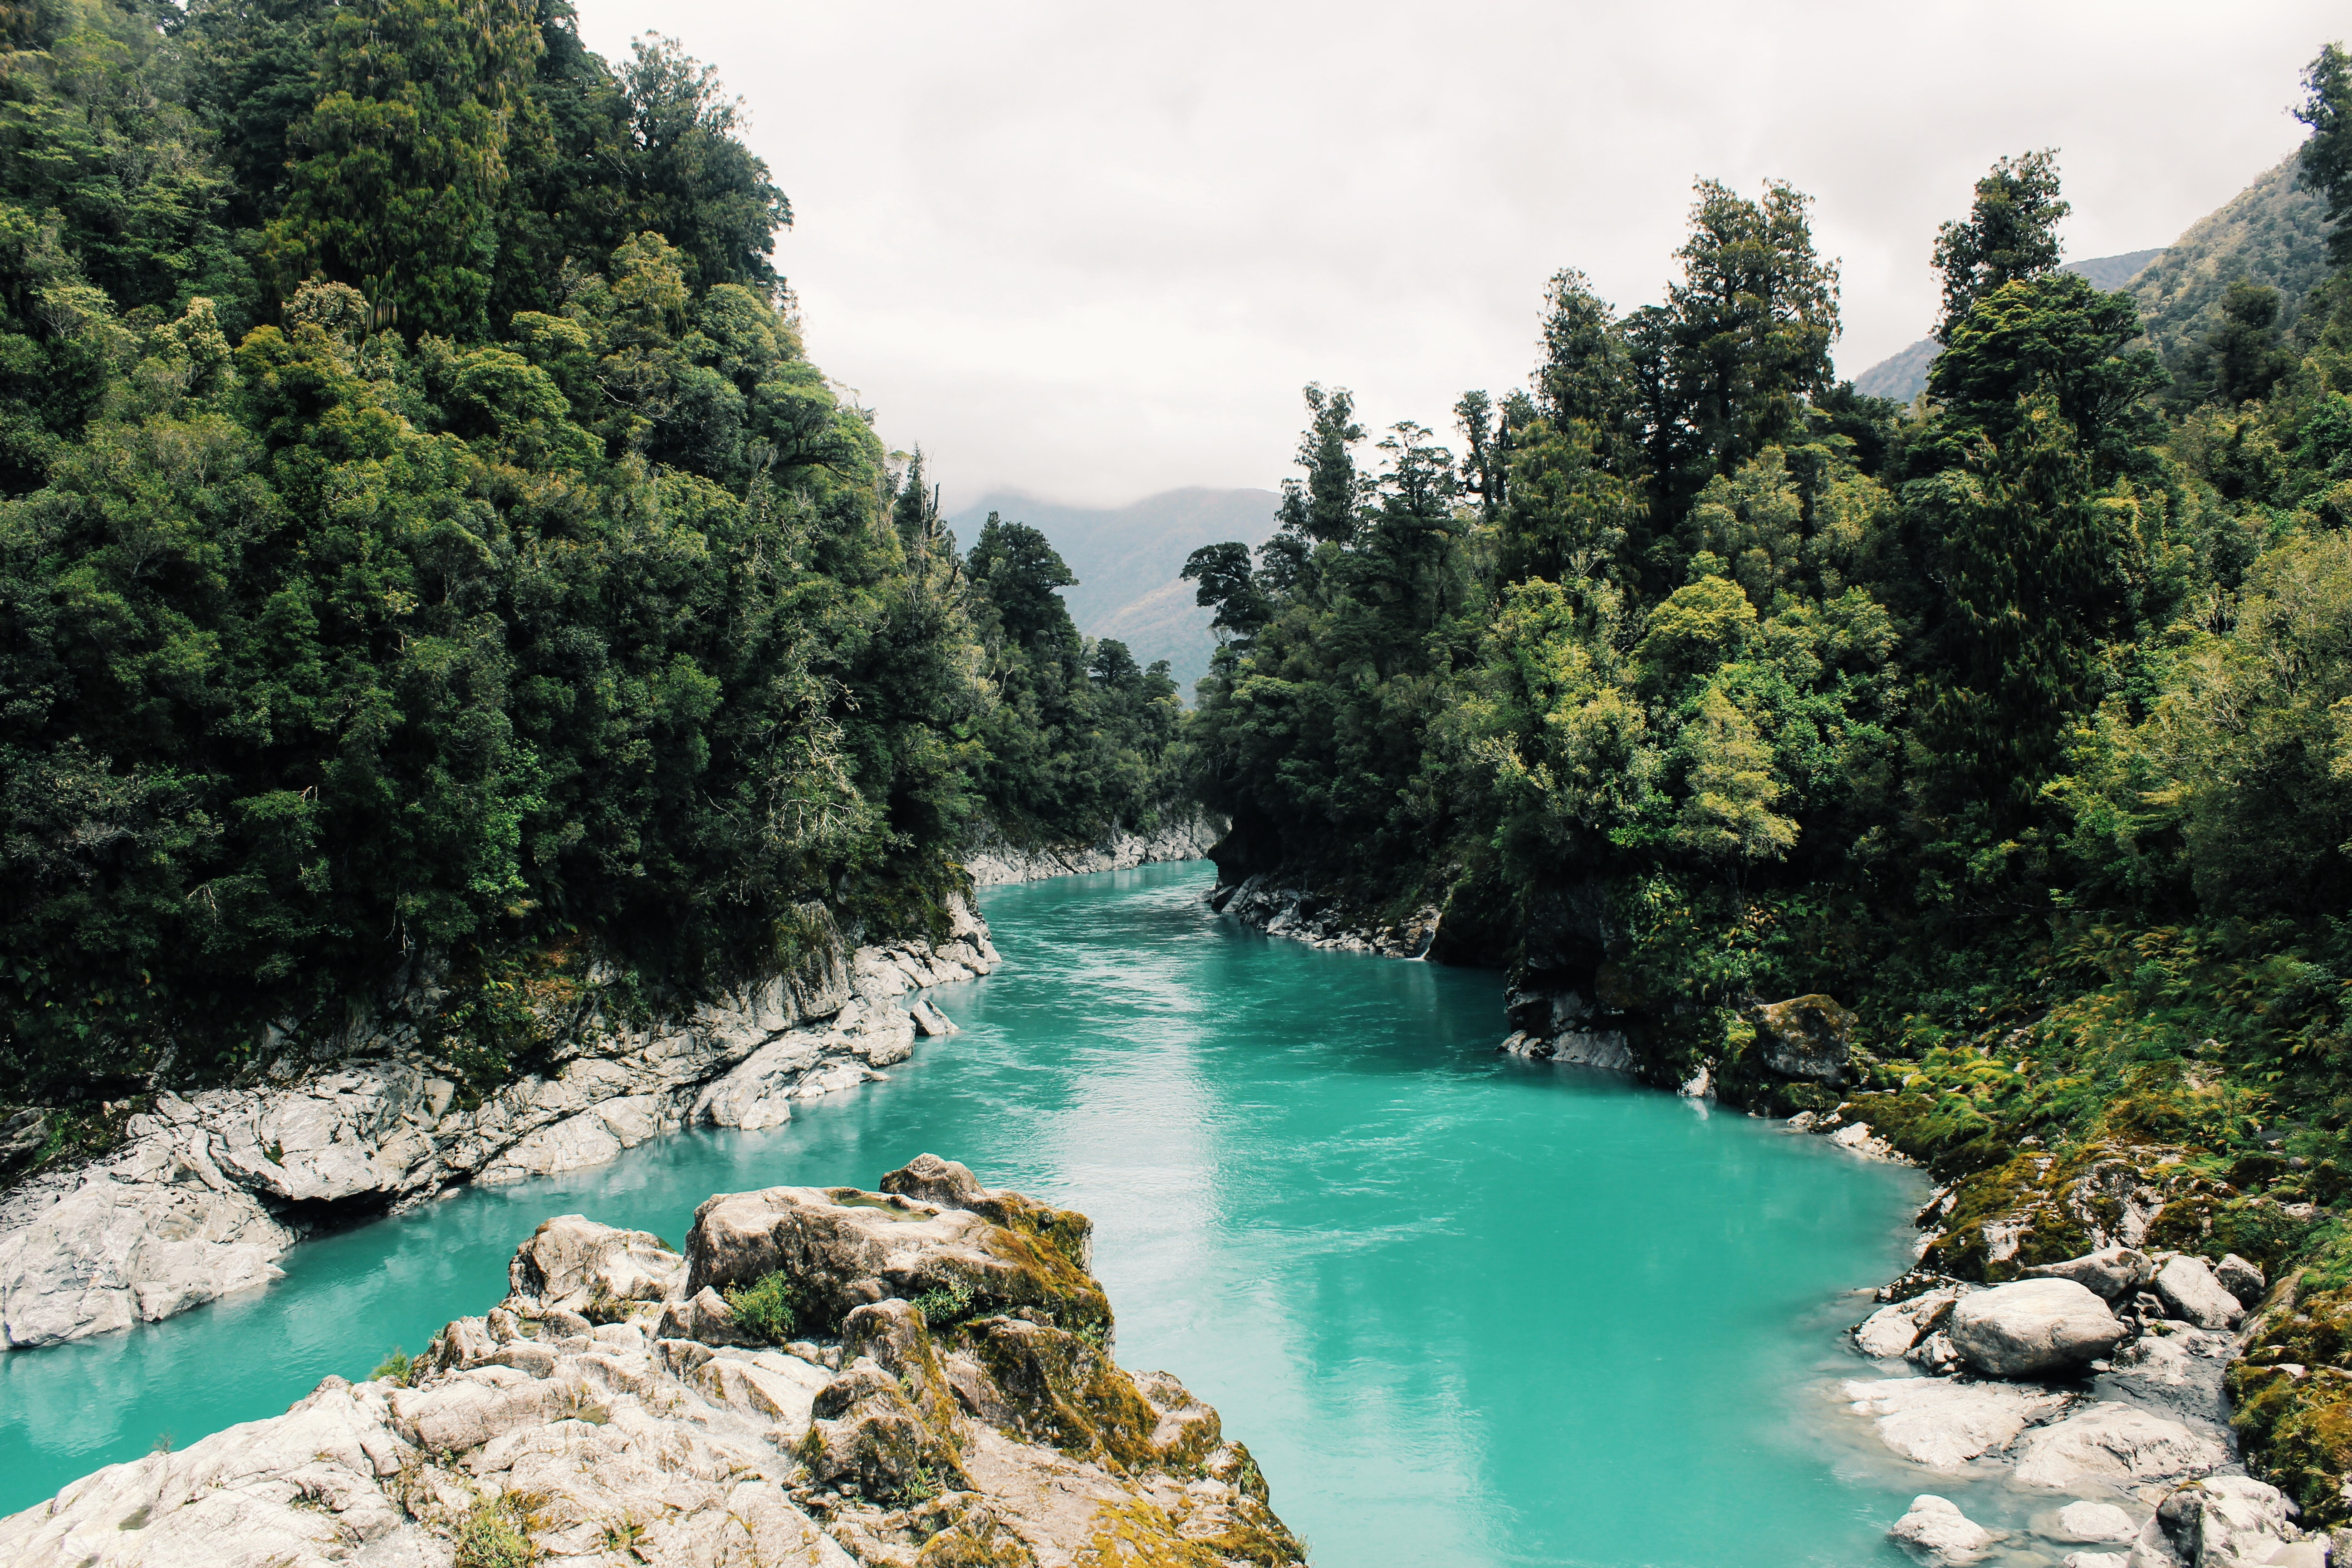 Scenic View of River, Adventure, Rainforest, Water, Turquoise, HQ Photo